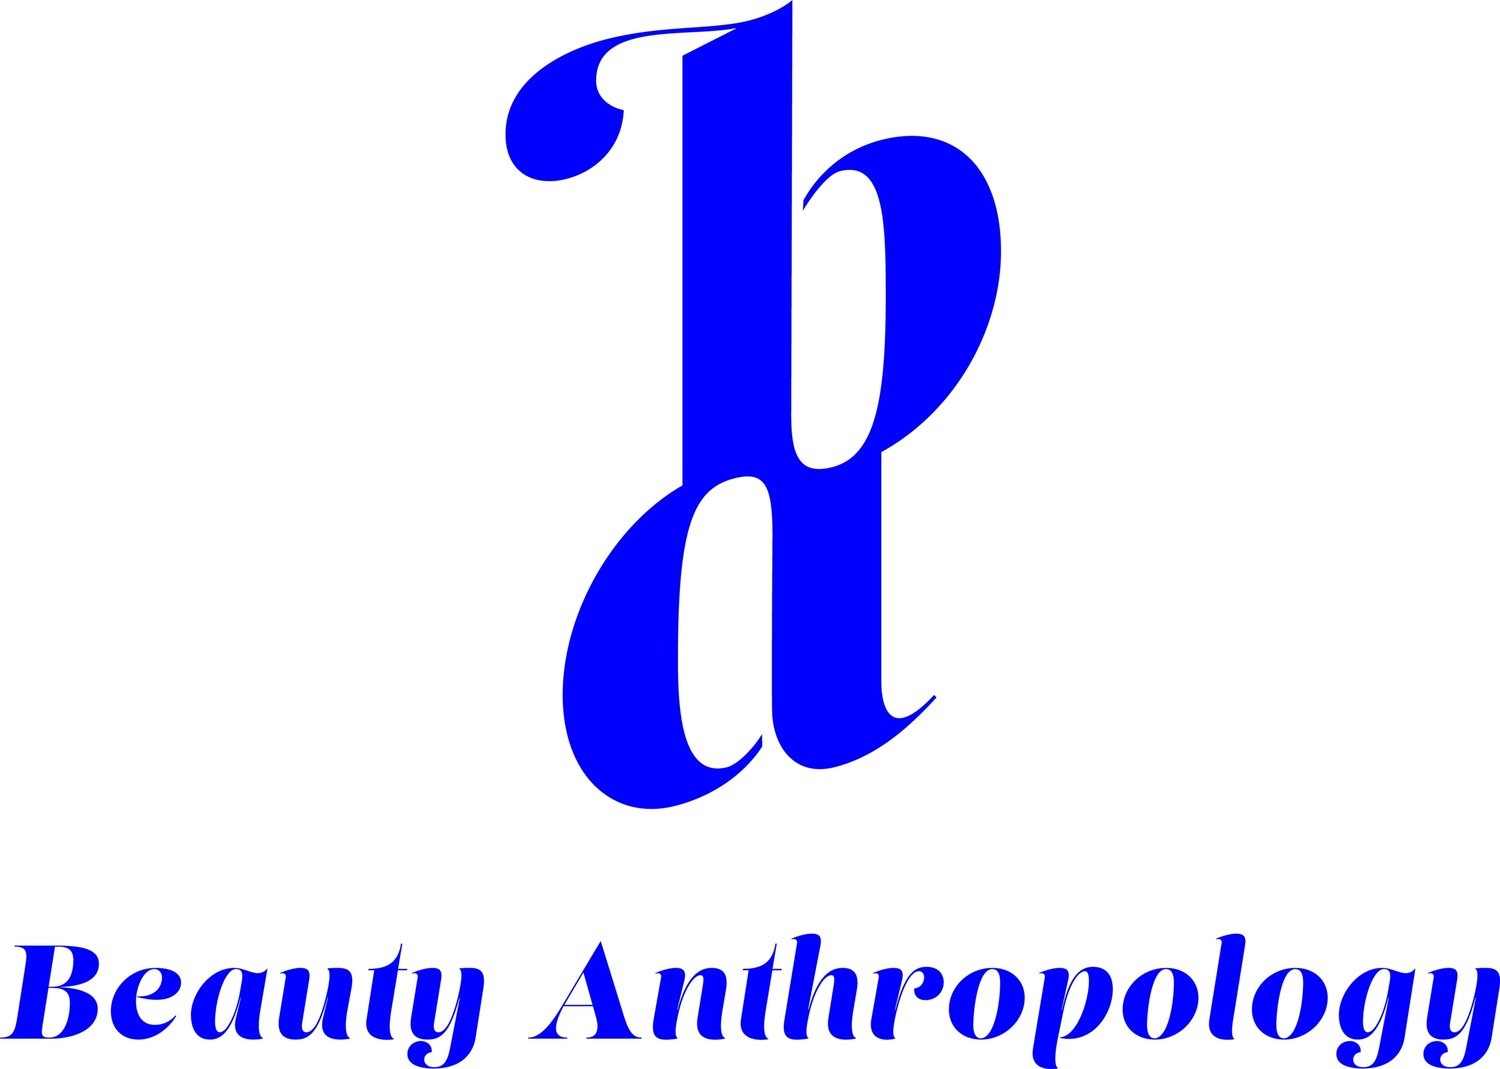 Beauty Anthropology